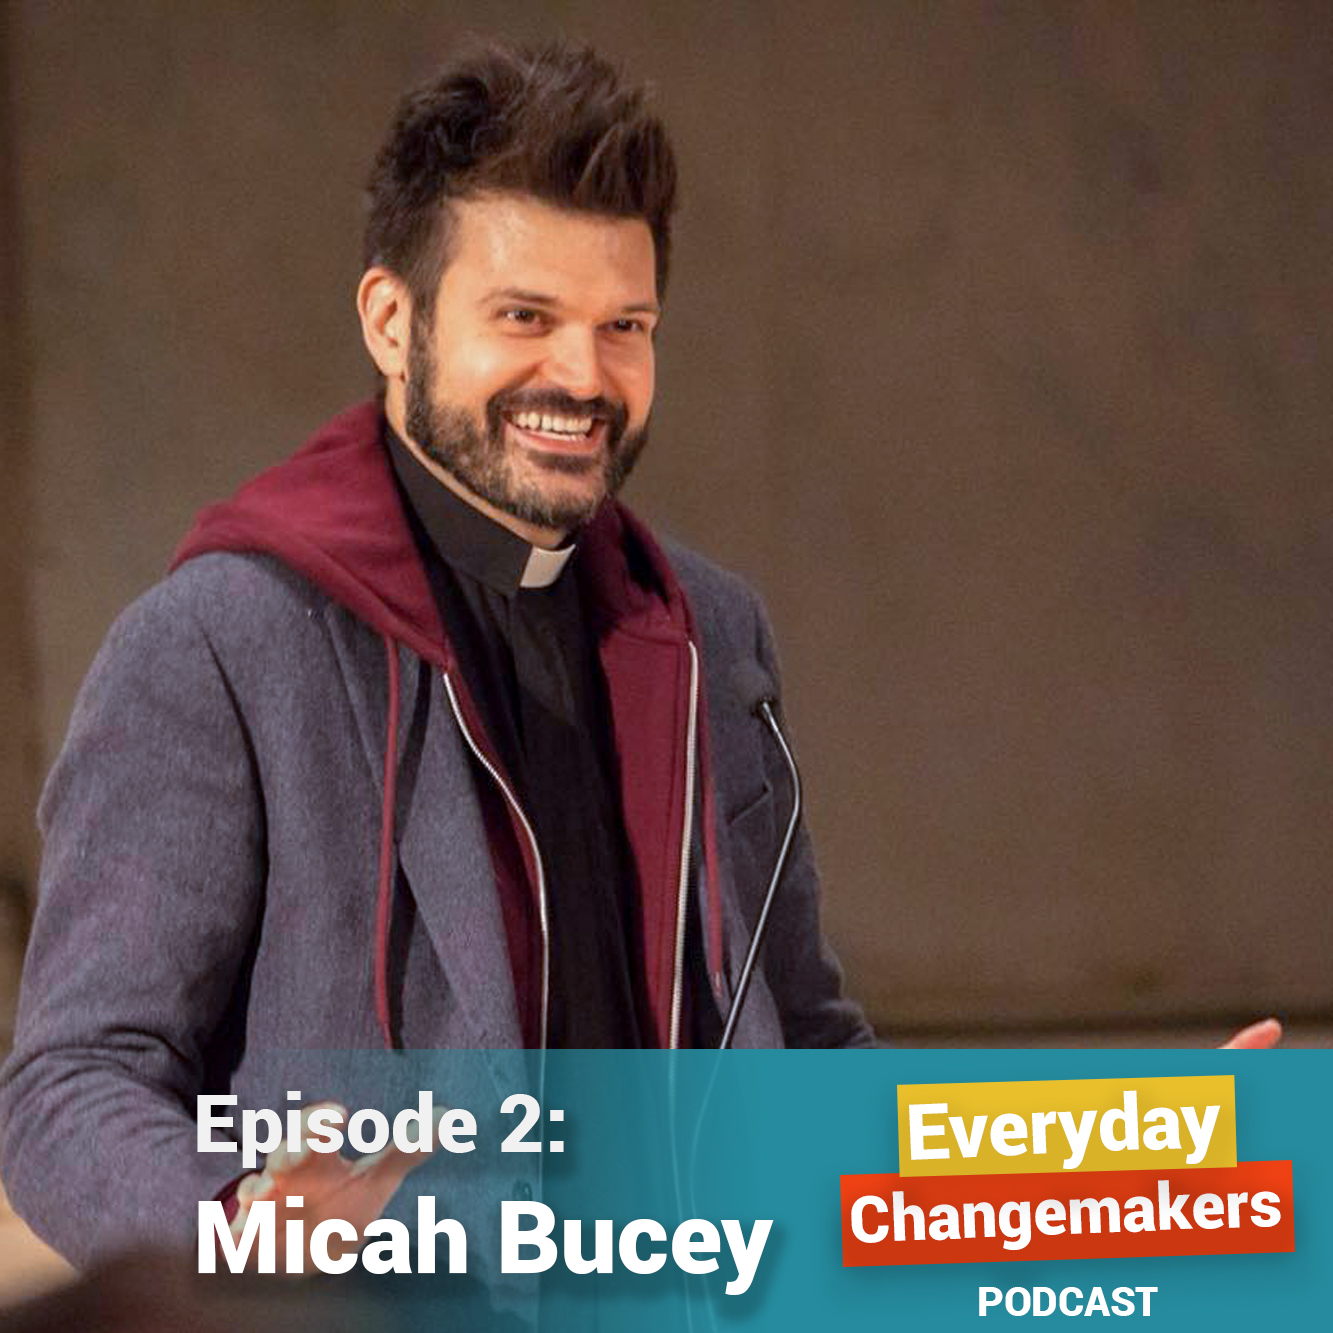 Saying YES To Yourself, Your Creative Voice, and Your Community - Rev. Micah Bucey is a minister at Judson Memorial Church in NYC. But he almost said no to ministry. We talk about his journey towards saying YES to himself, and how he practices saying YES in community. Our conversation spans Micah's work to support artists as modern-day prophets, his activism for immigration reform, and lessons from The Golden Girls in human relations.Bonus: You can download Finding Your Prophetic Voice: A Guided Meditation right here.